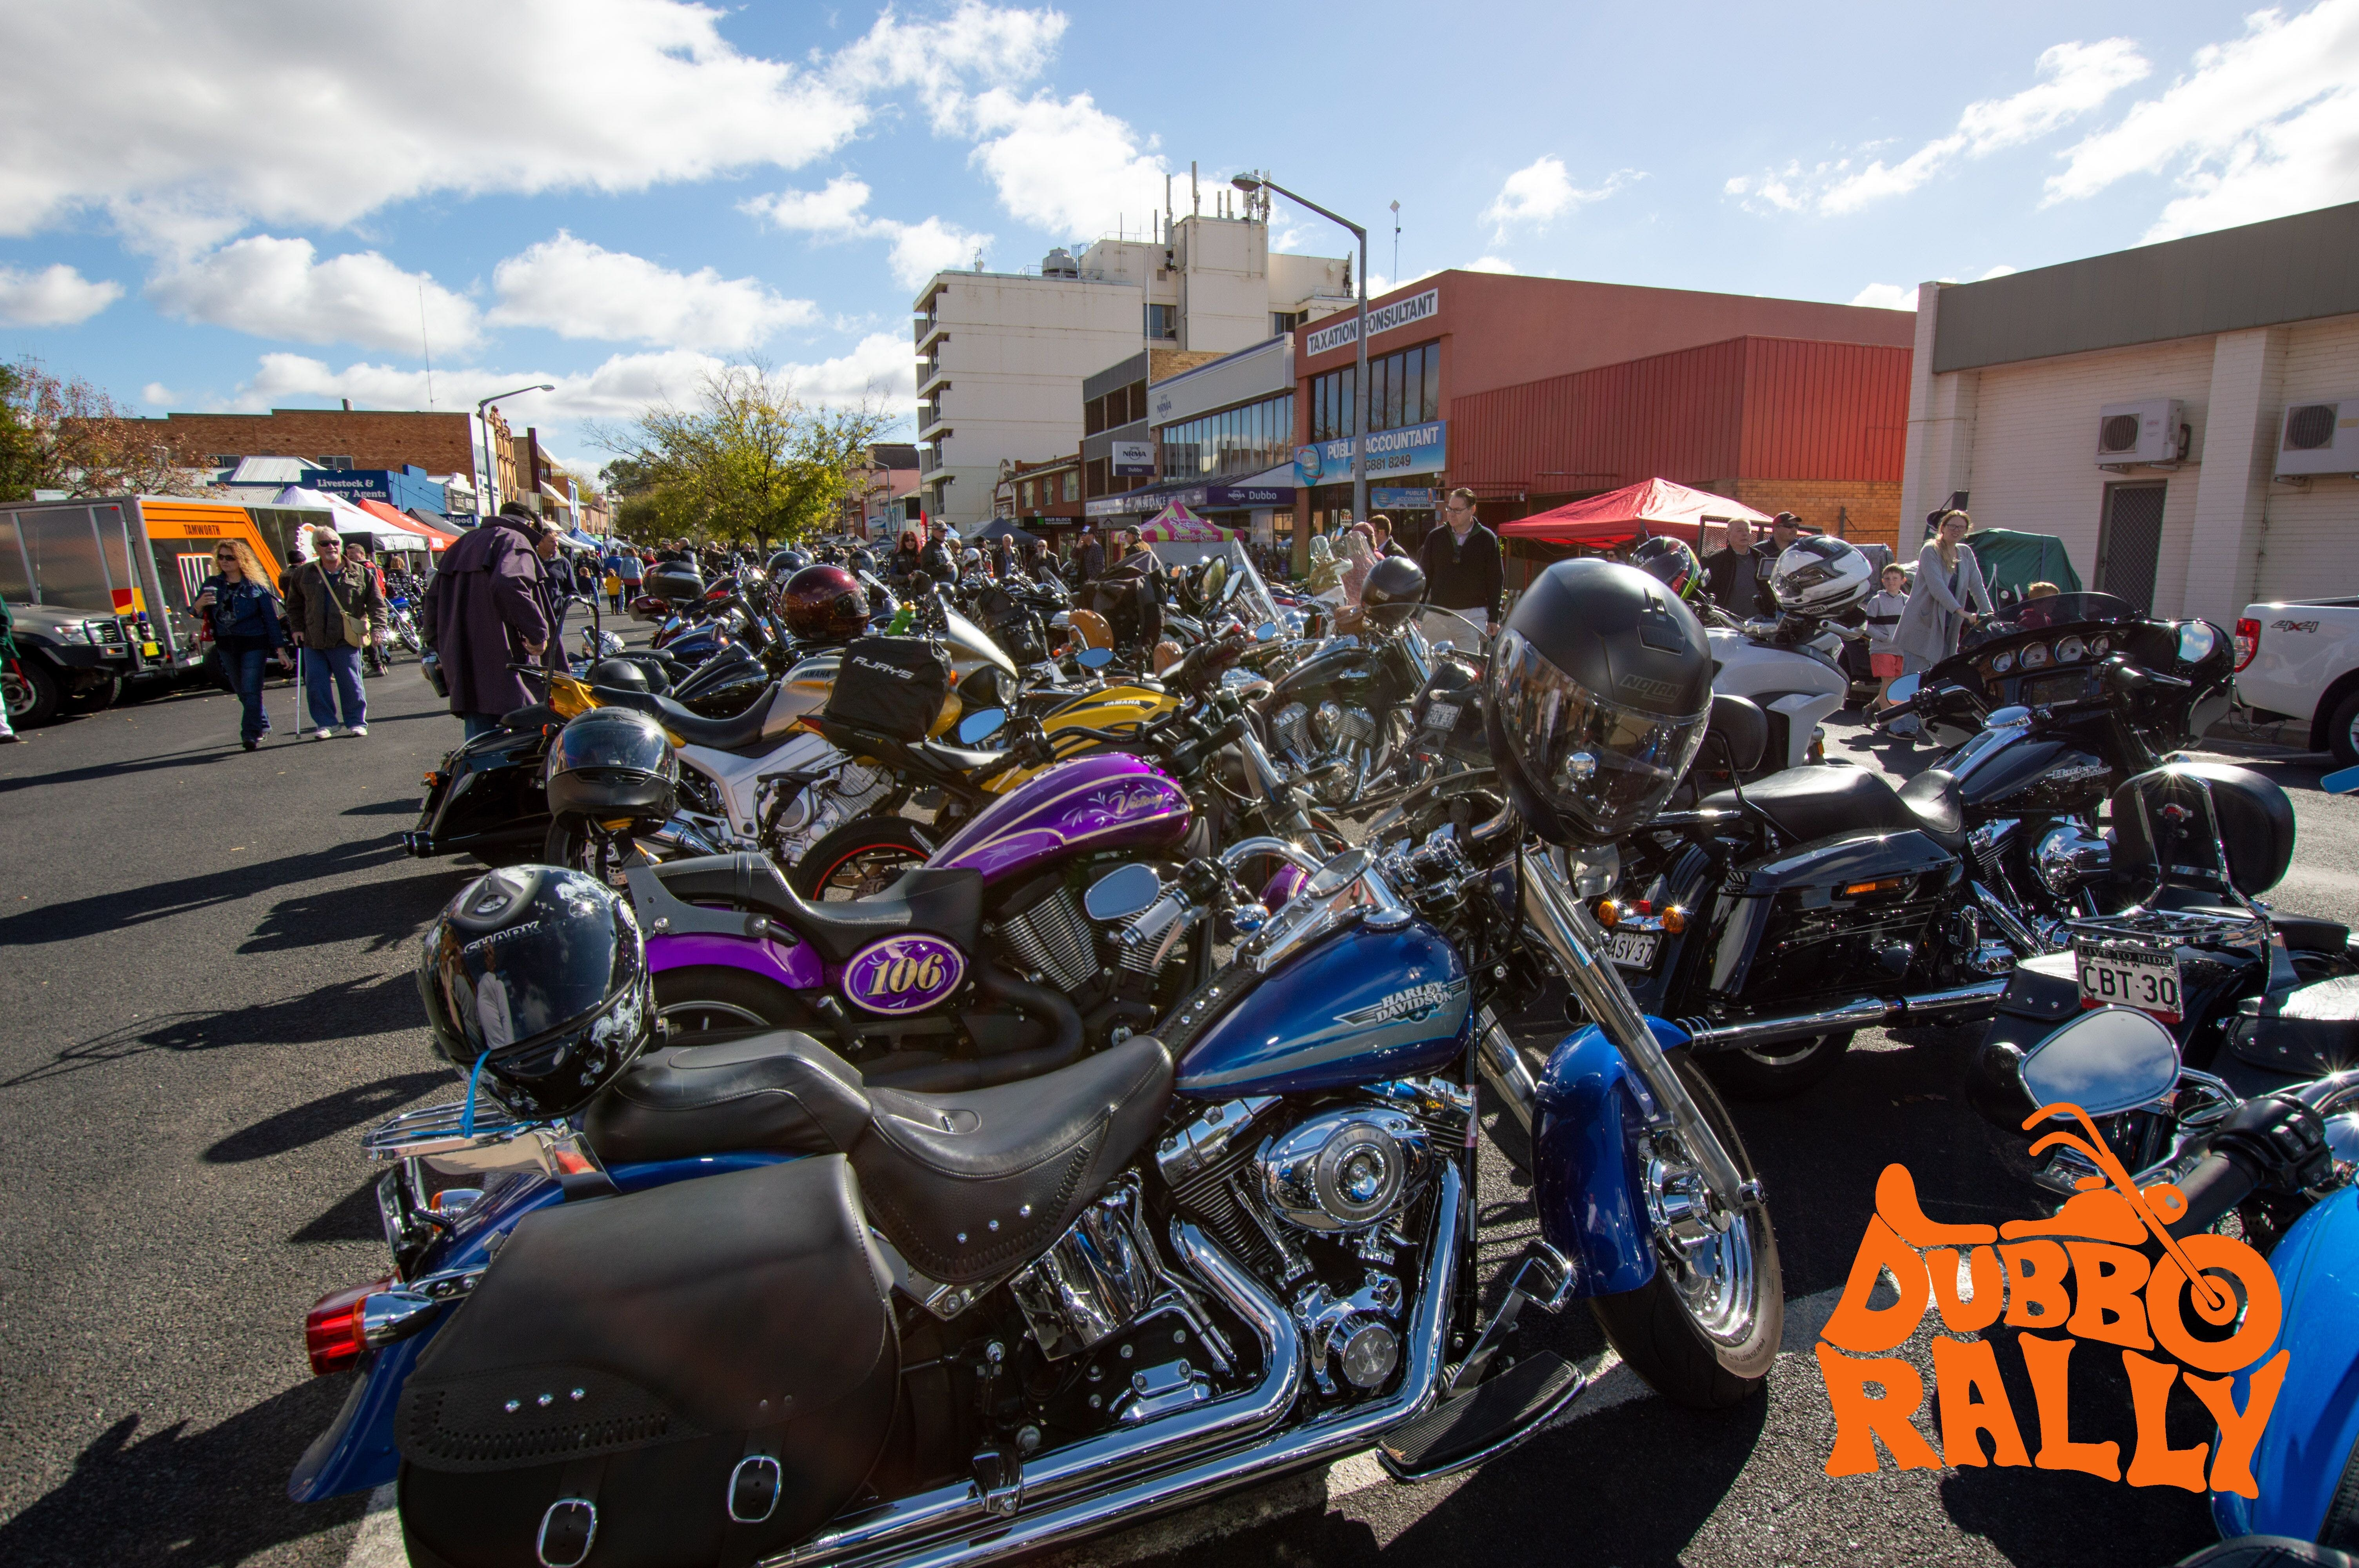 Dubbo Motor Bike Rally - New South Wales Tourism